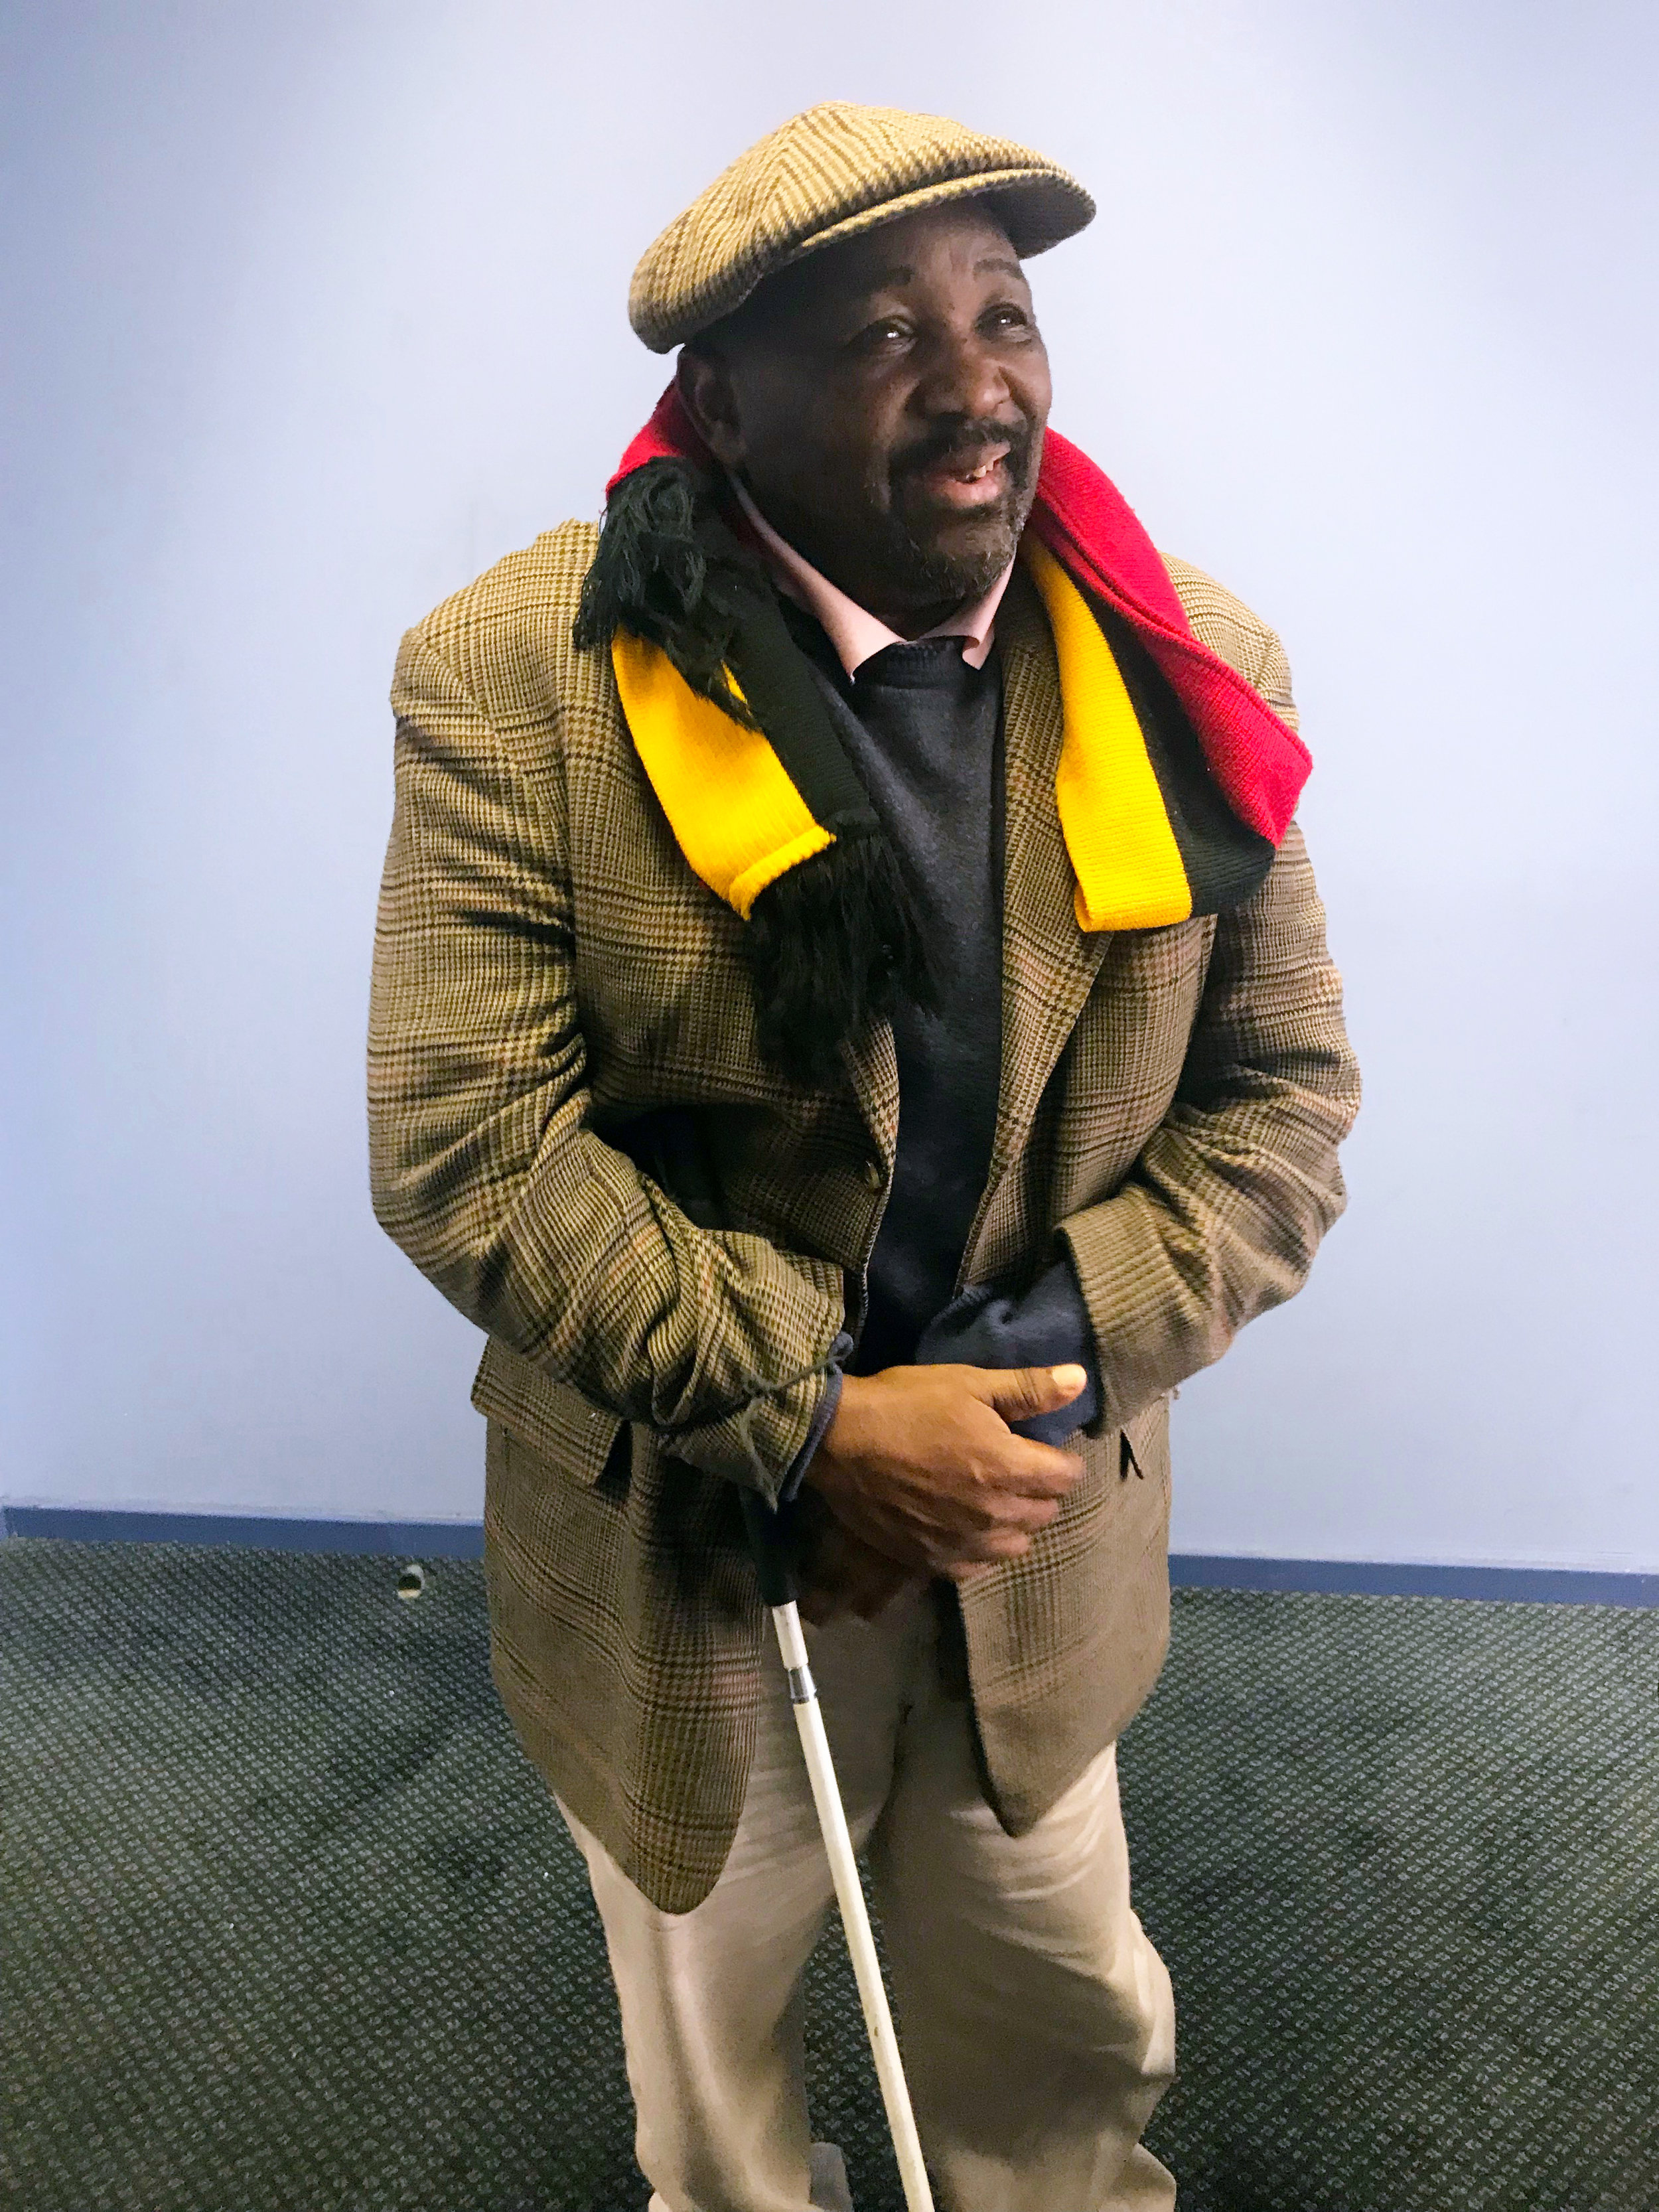 Monroe at SACTWU offices after our interview in June 2018.